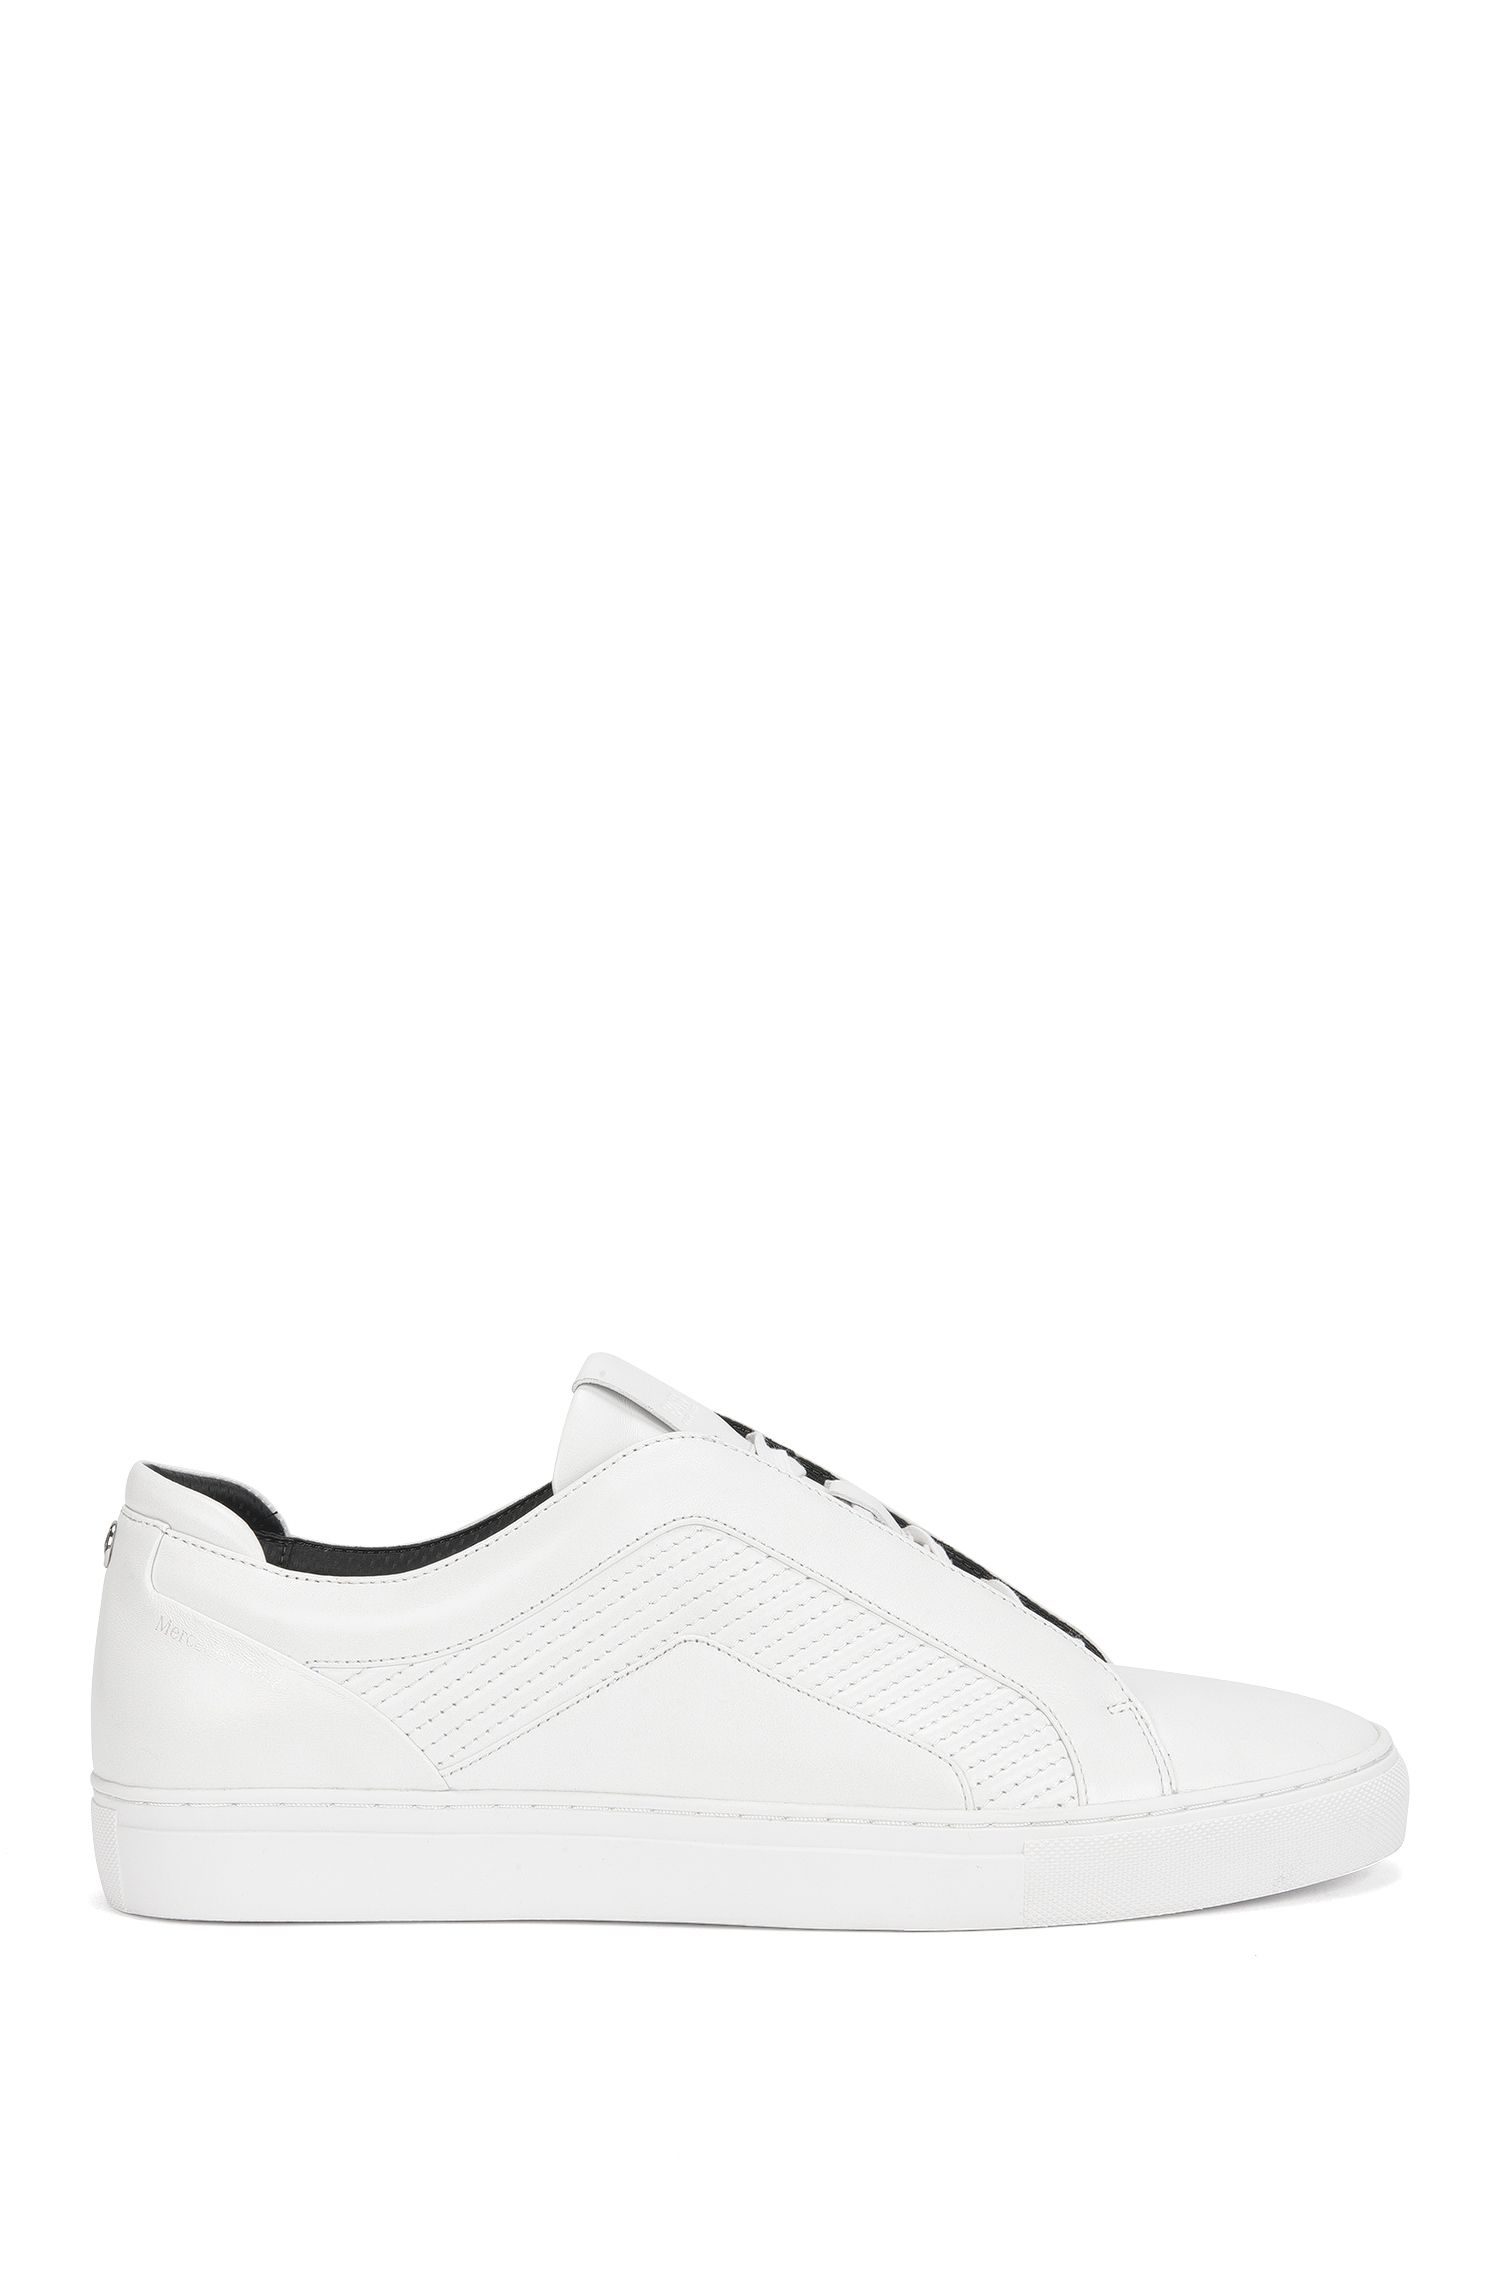 Tennis shoes in smooth leather